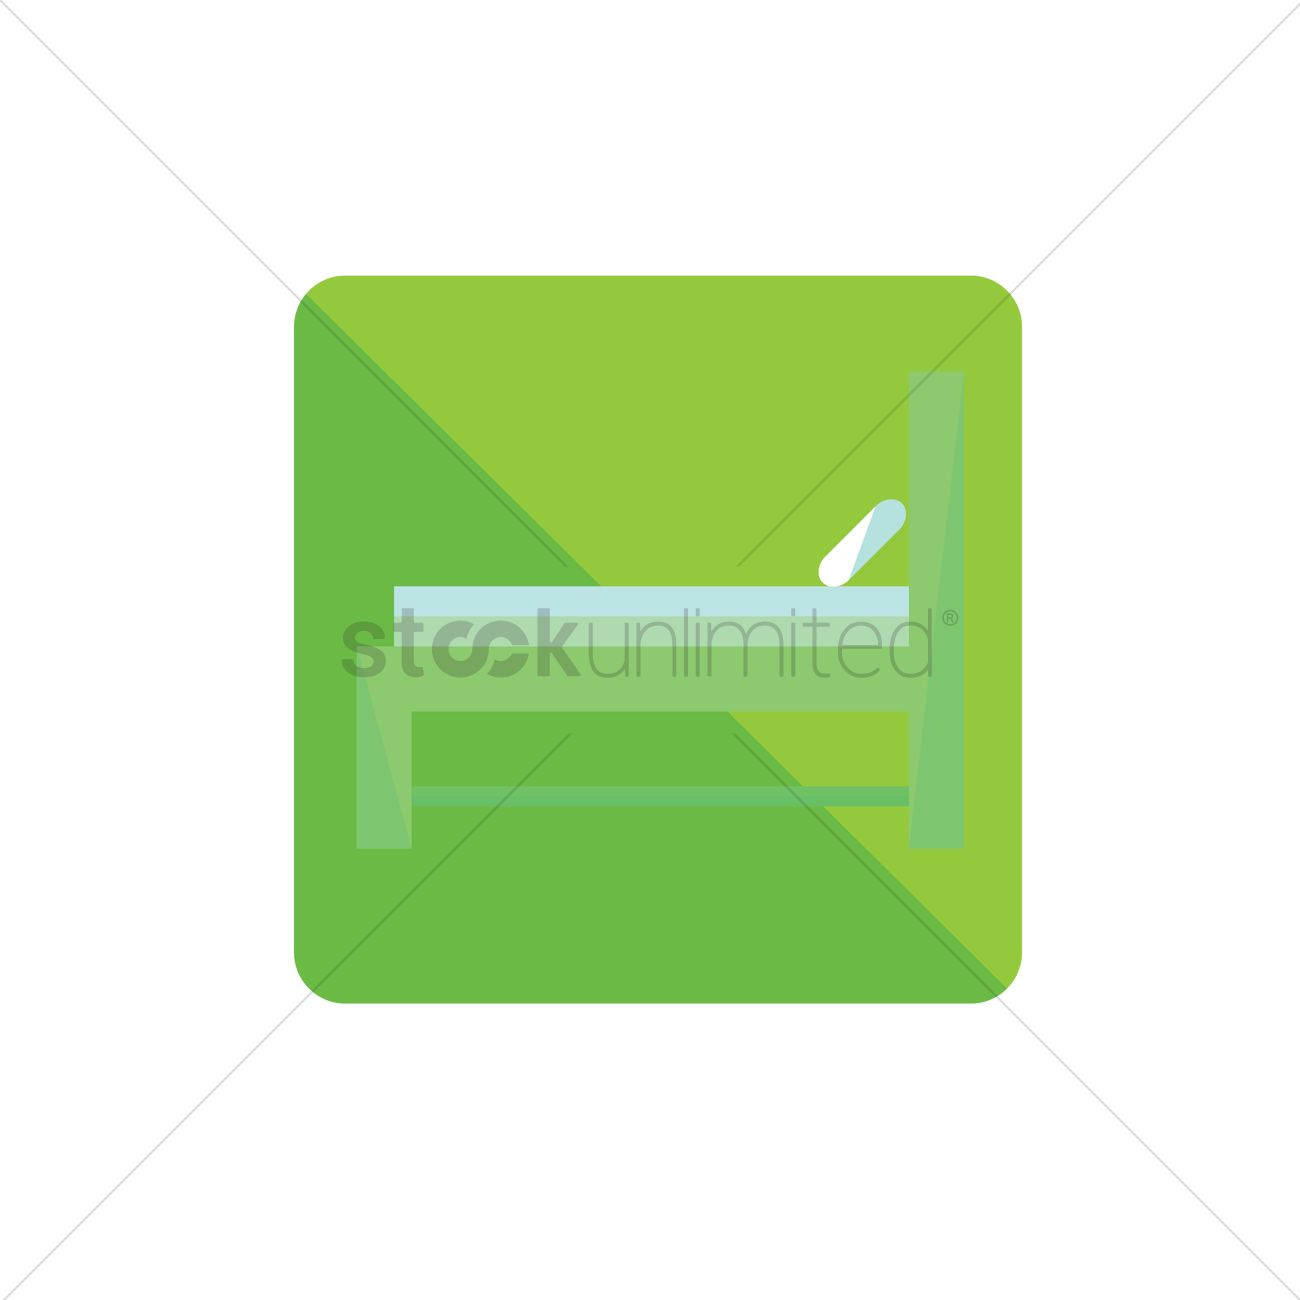 1300x1300 Free Hospital Bed Vector Image